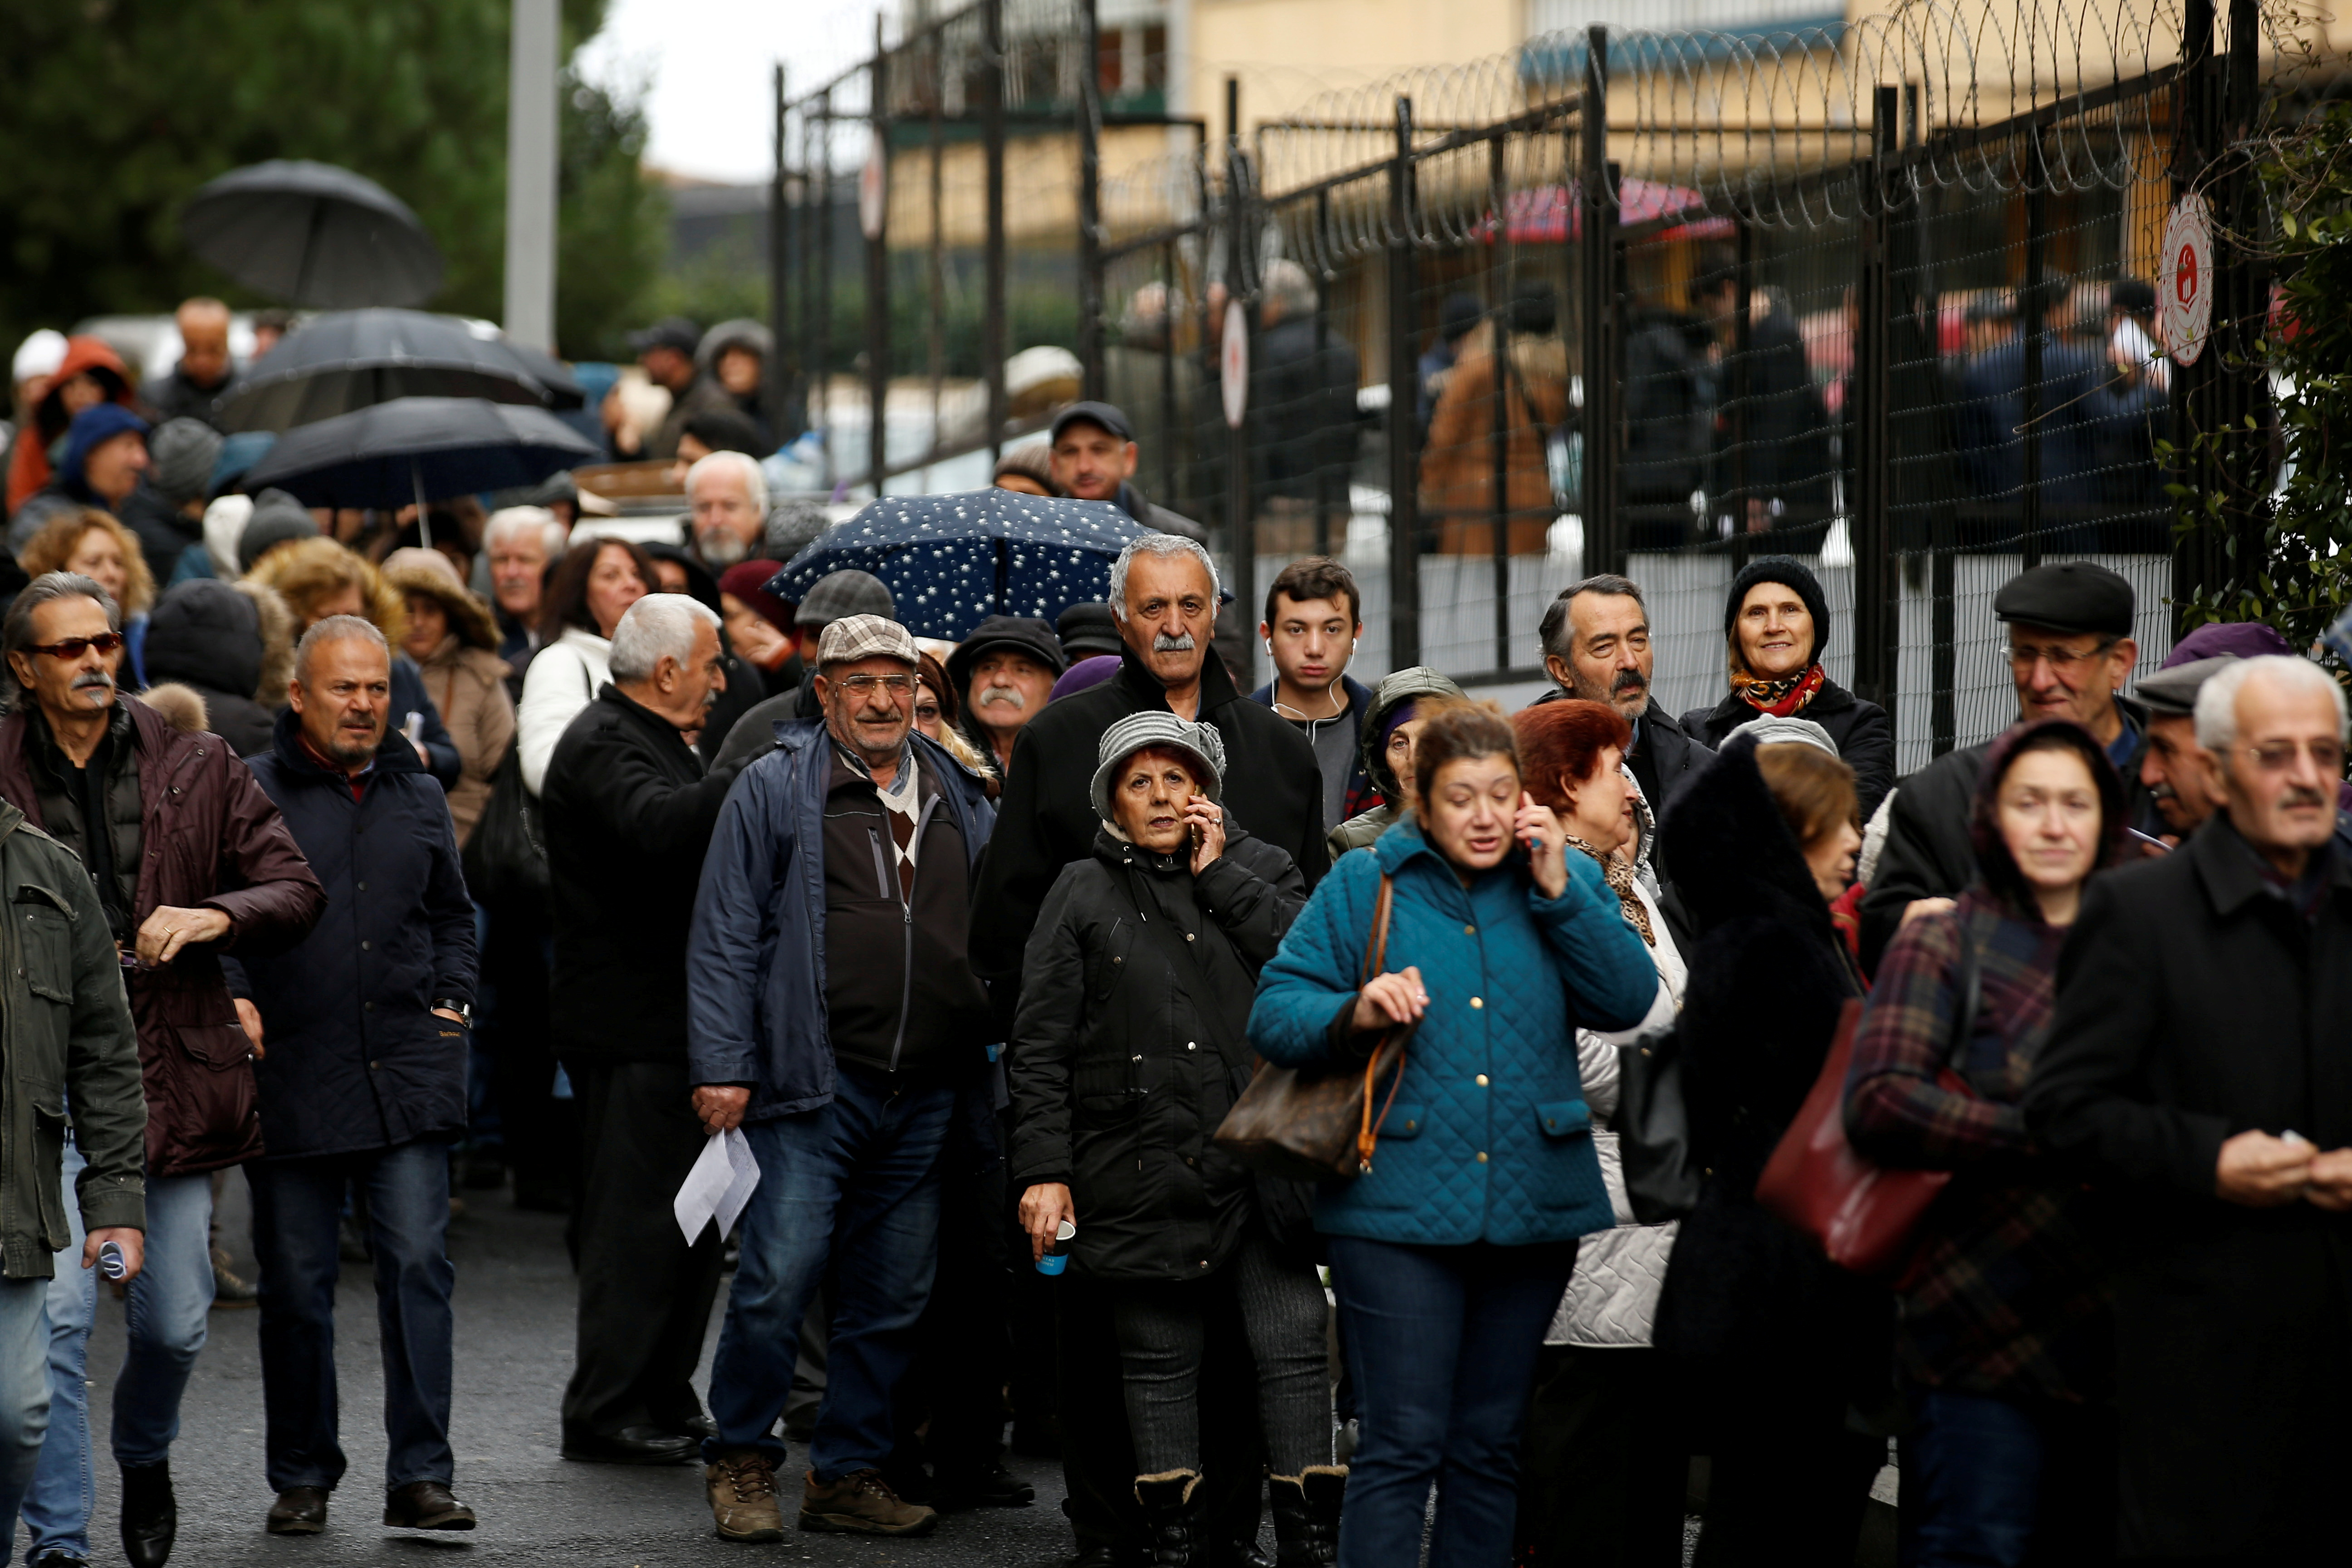 People wait in line to submit their petitions opposing a massive canal project in Istanbul, Turkey, December 27, 2019. REUTERS/Huseyin Aldemir/File Photo